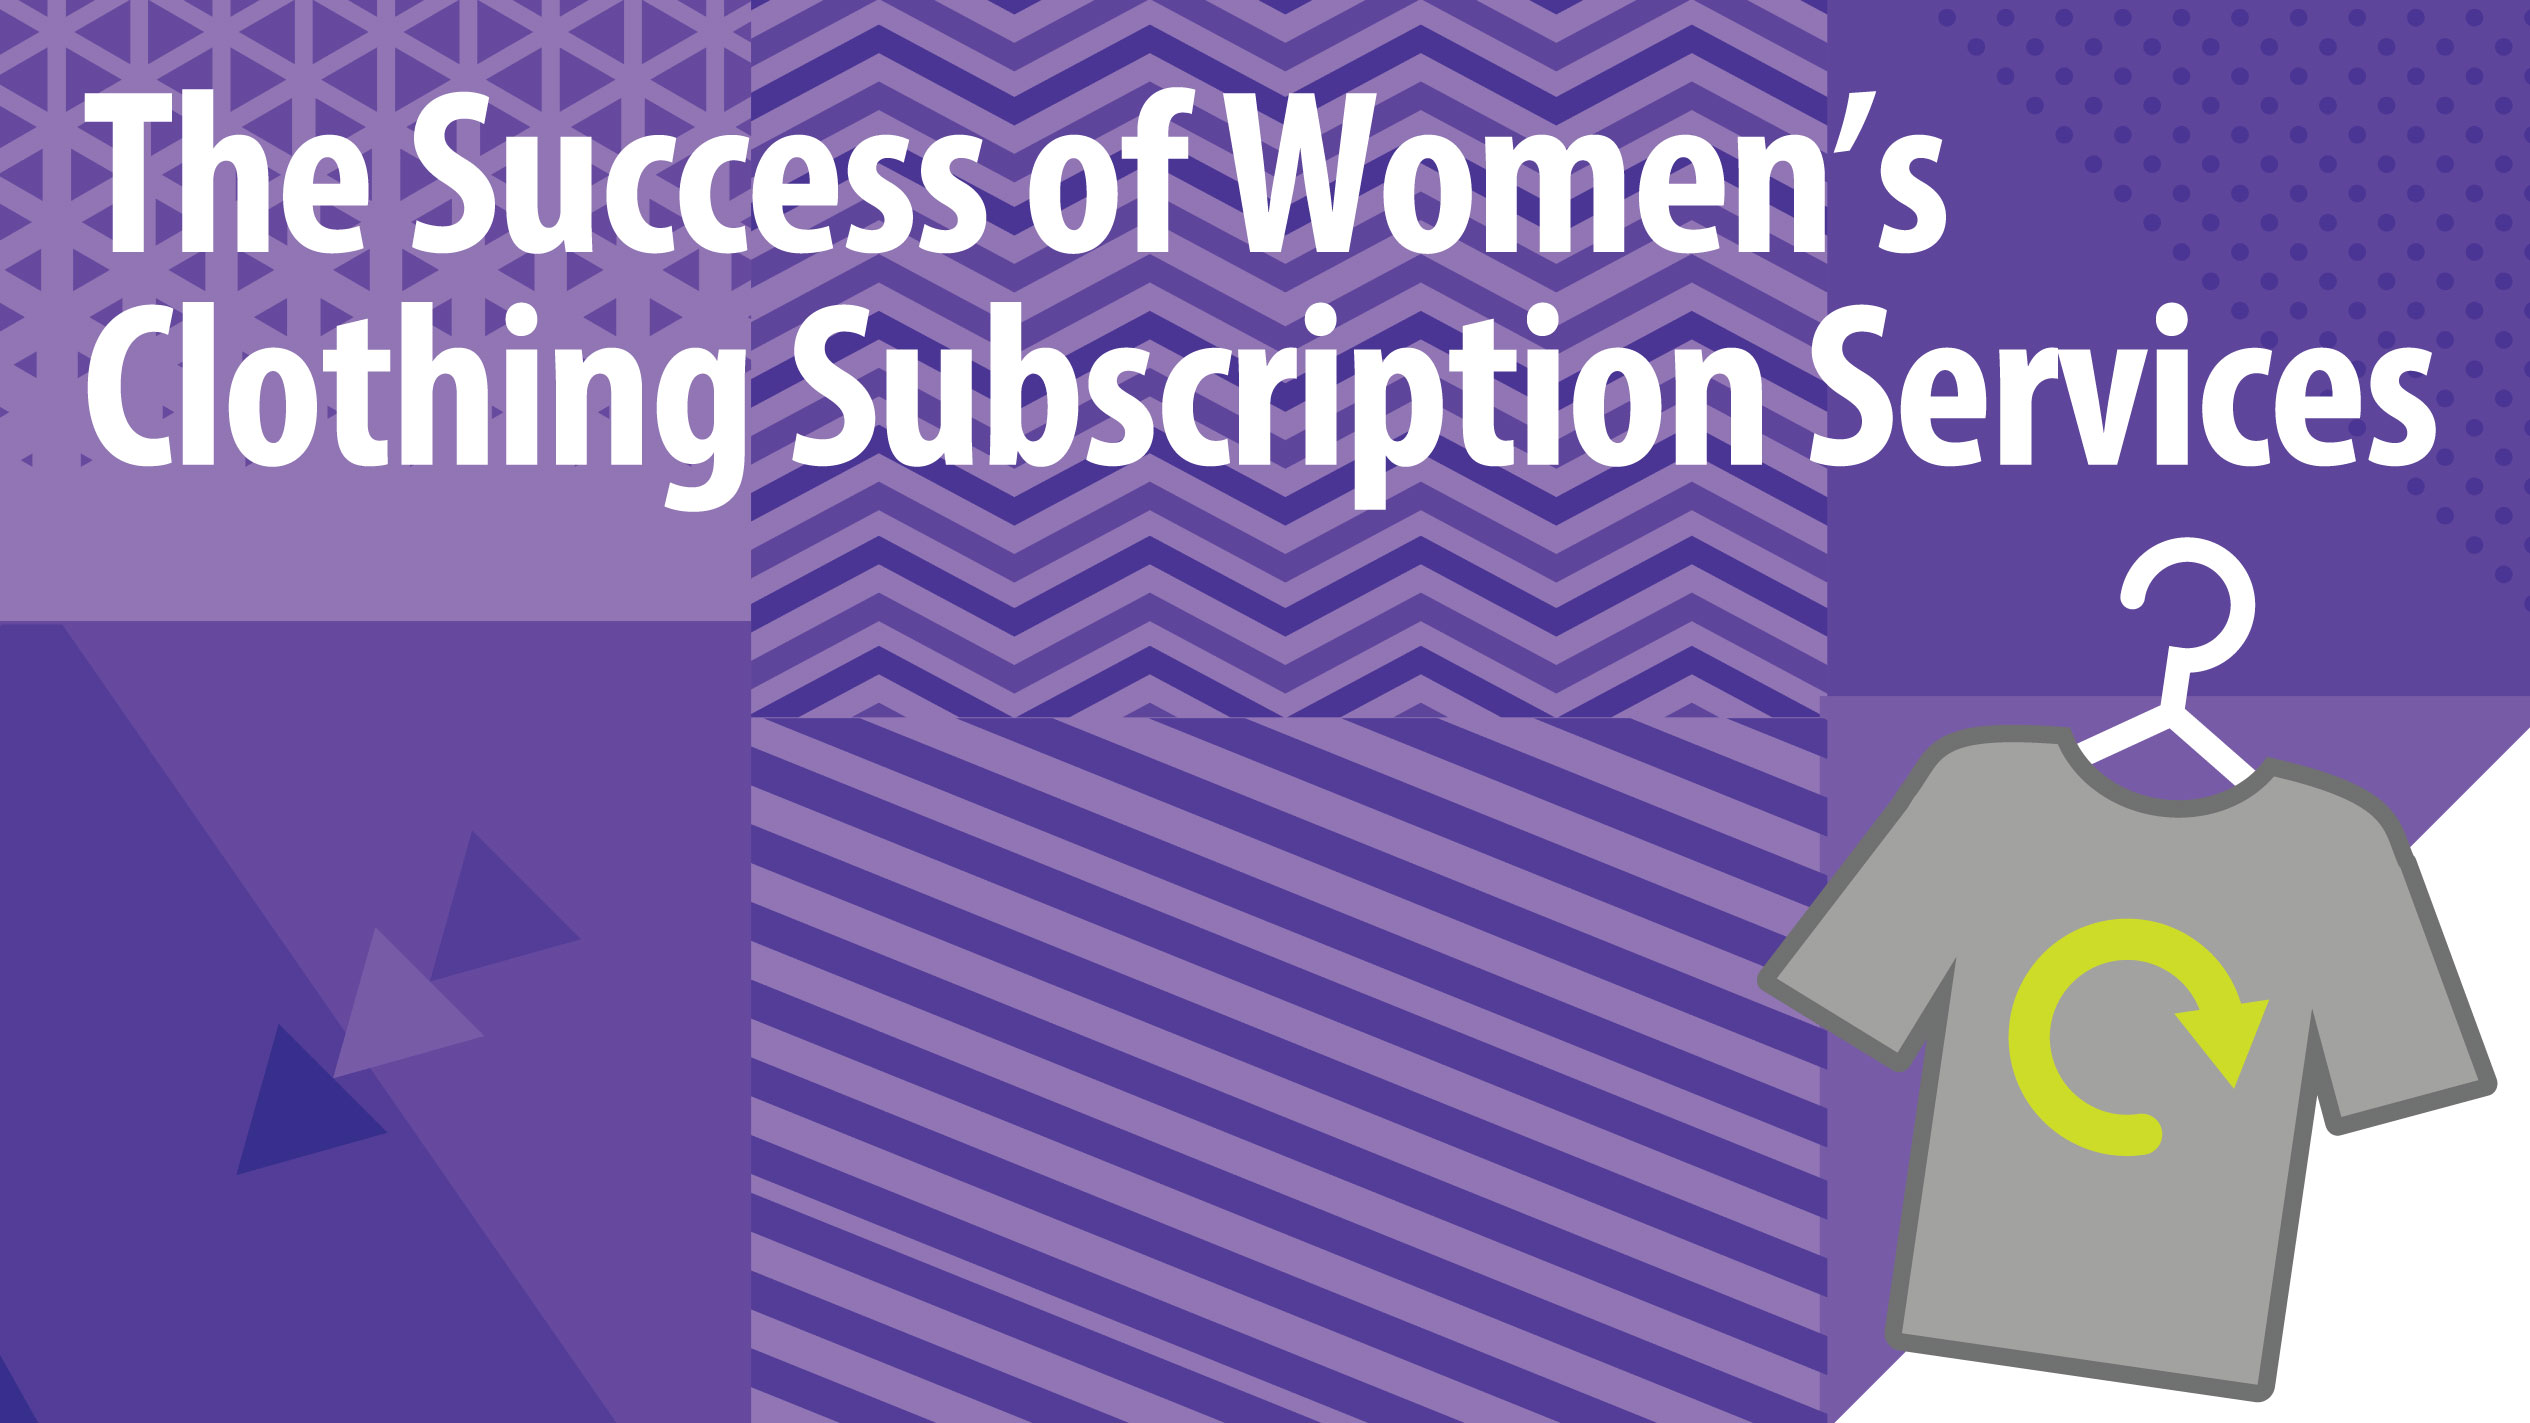 The Success of Women's Clothing Subscription Services